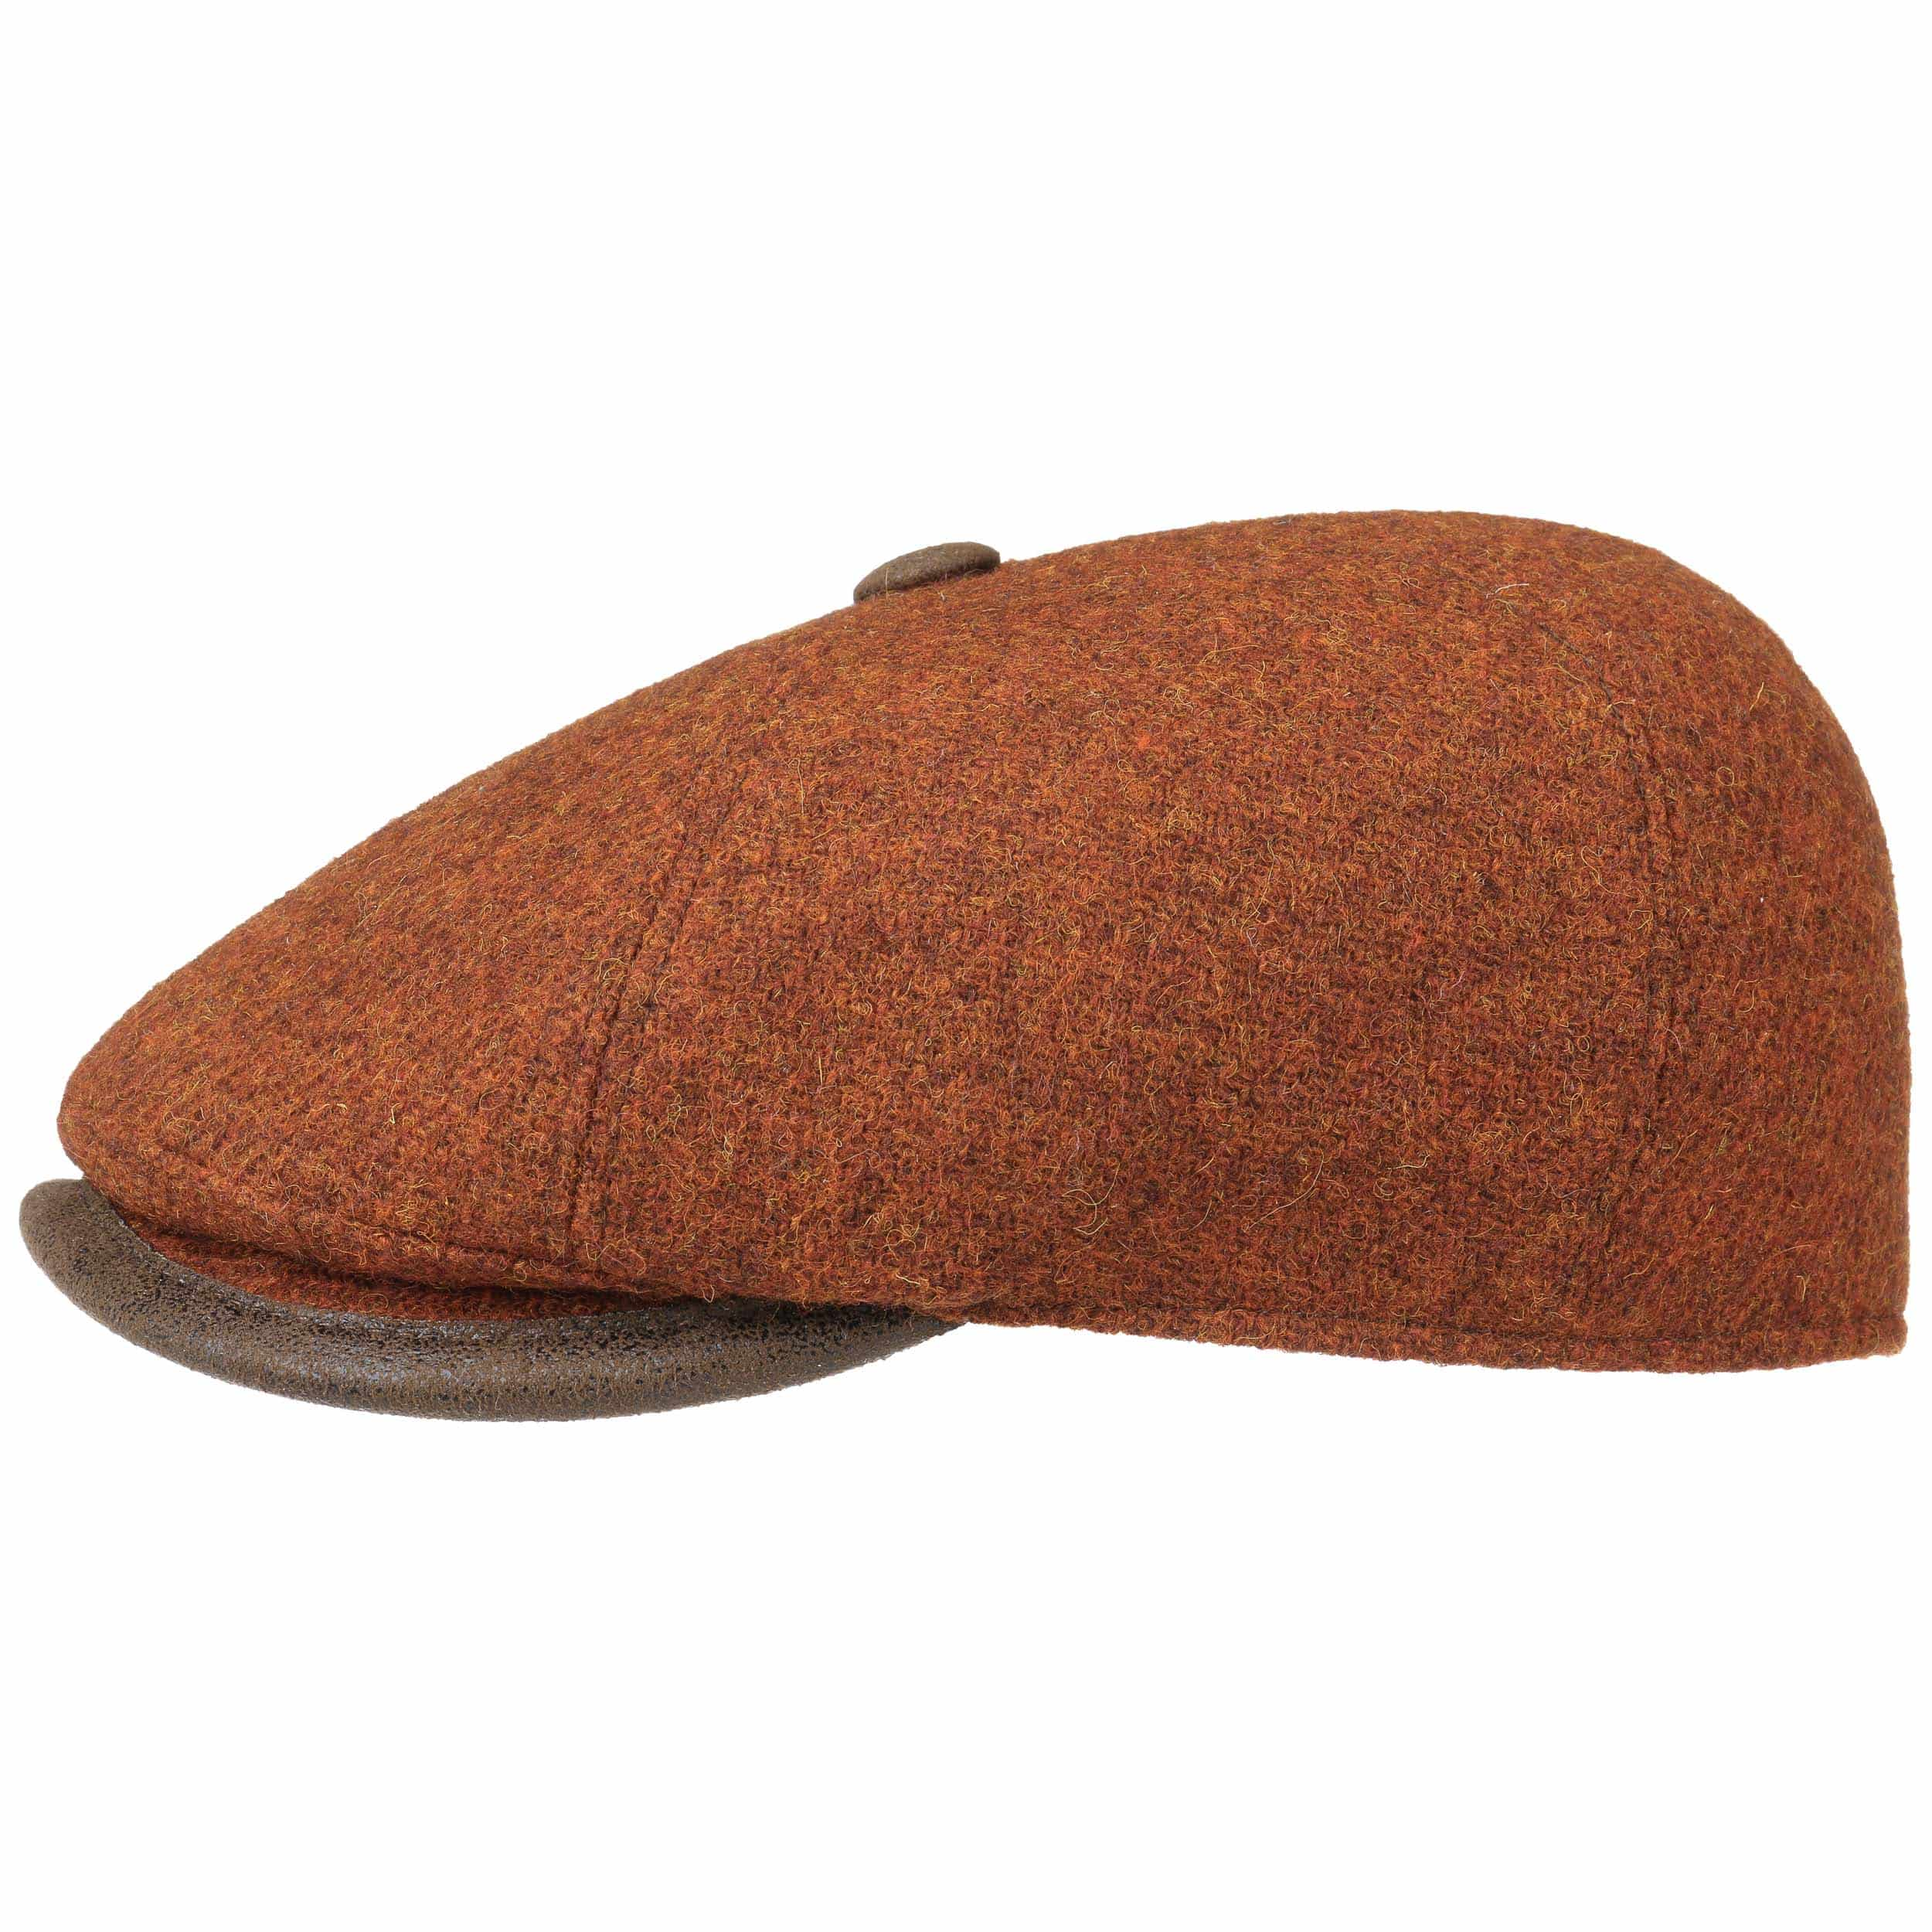 258c92ec9b8 Harris Tweed Flat Cap with Leather by Lierys